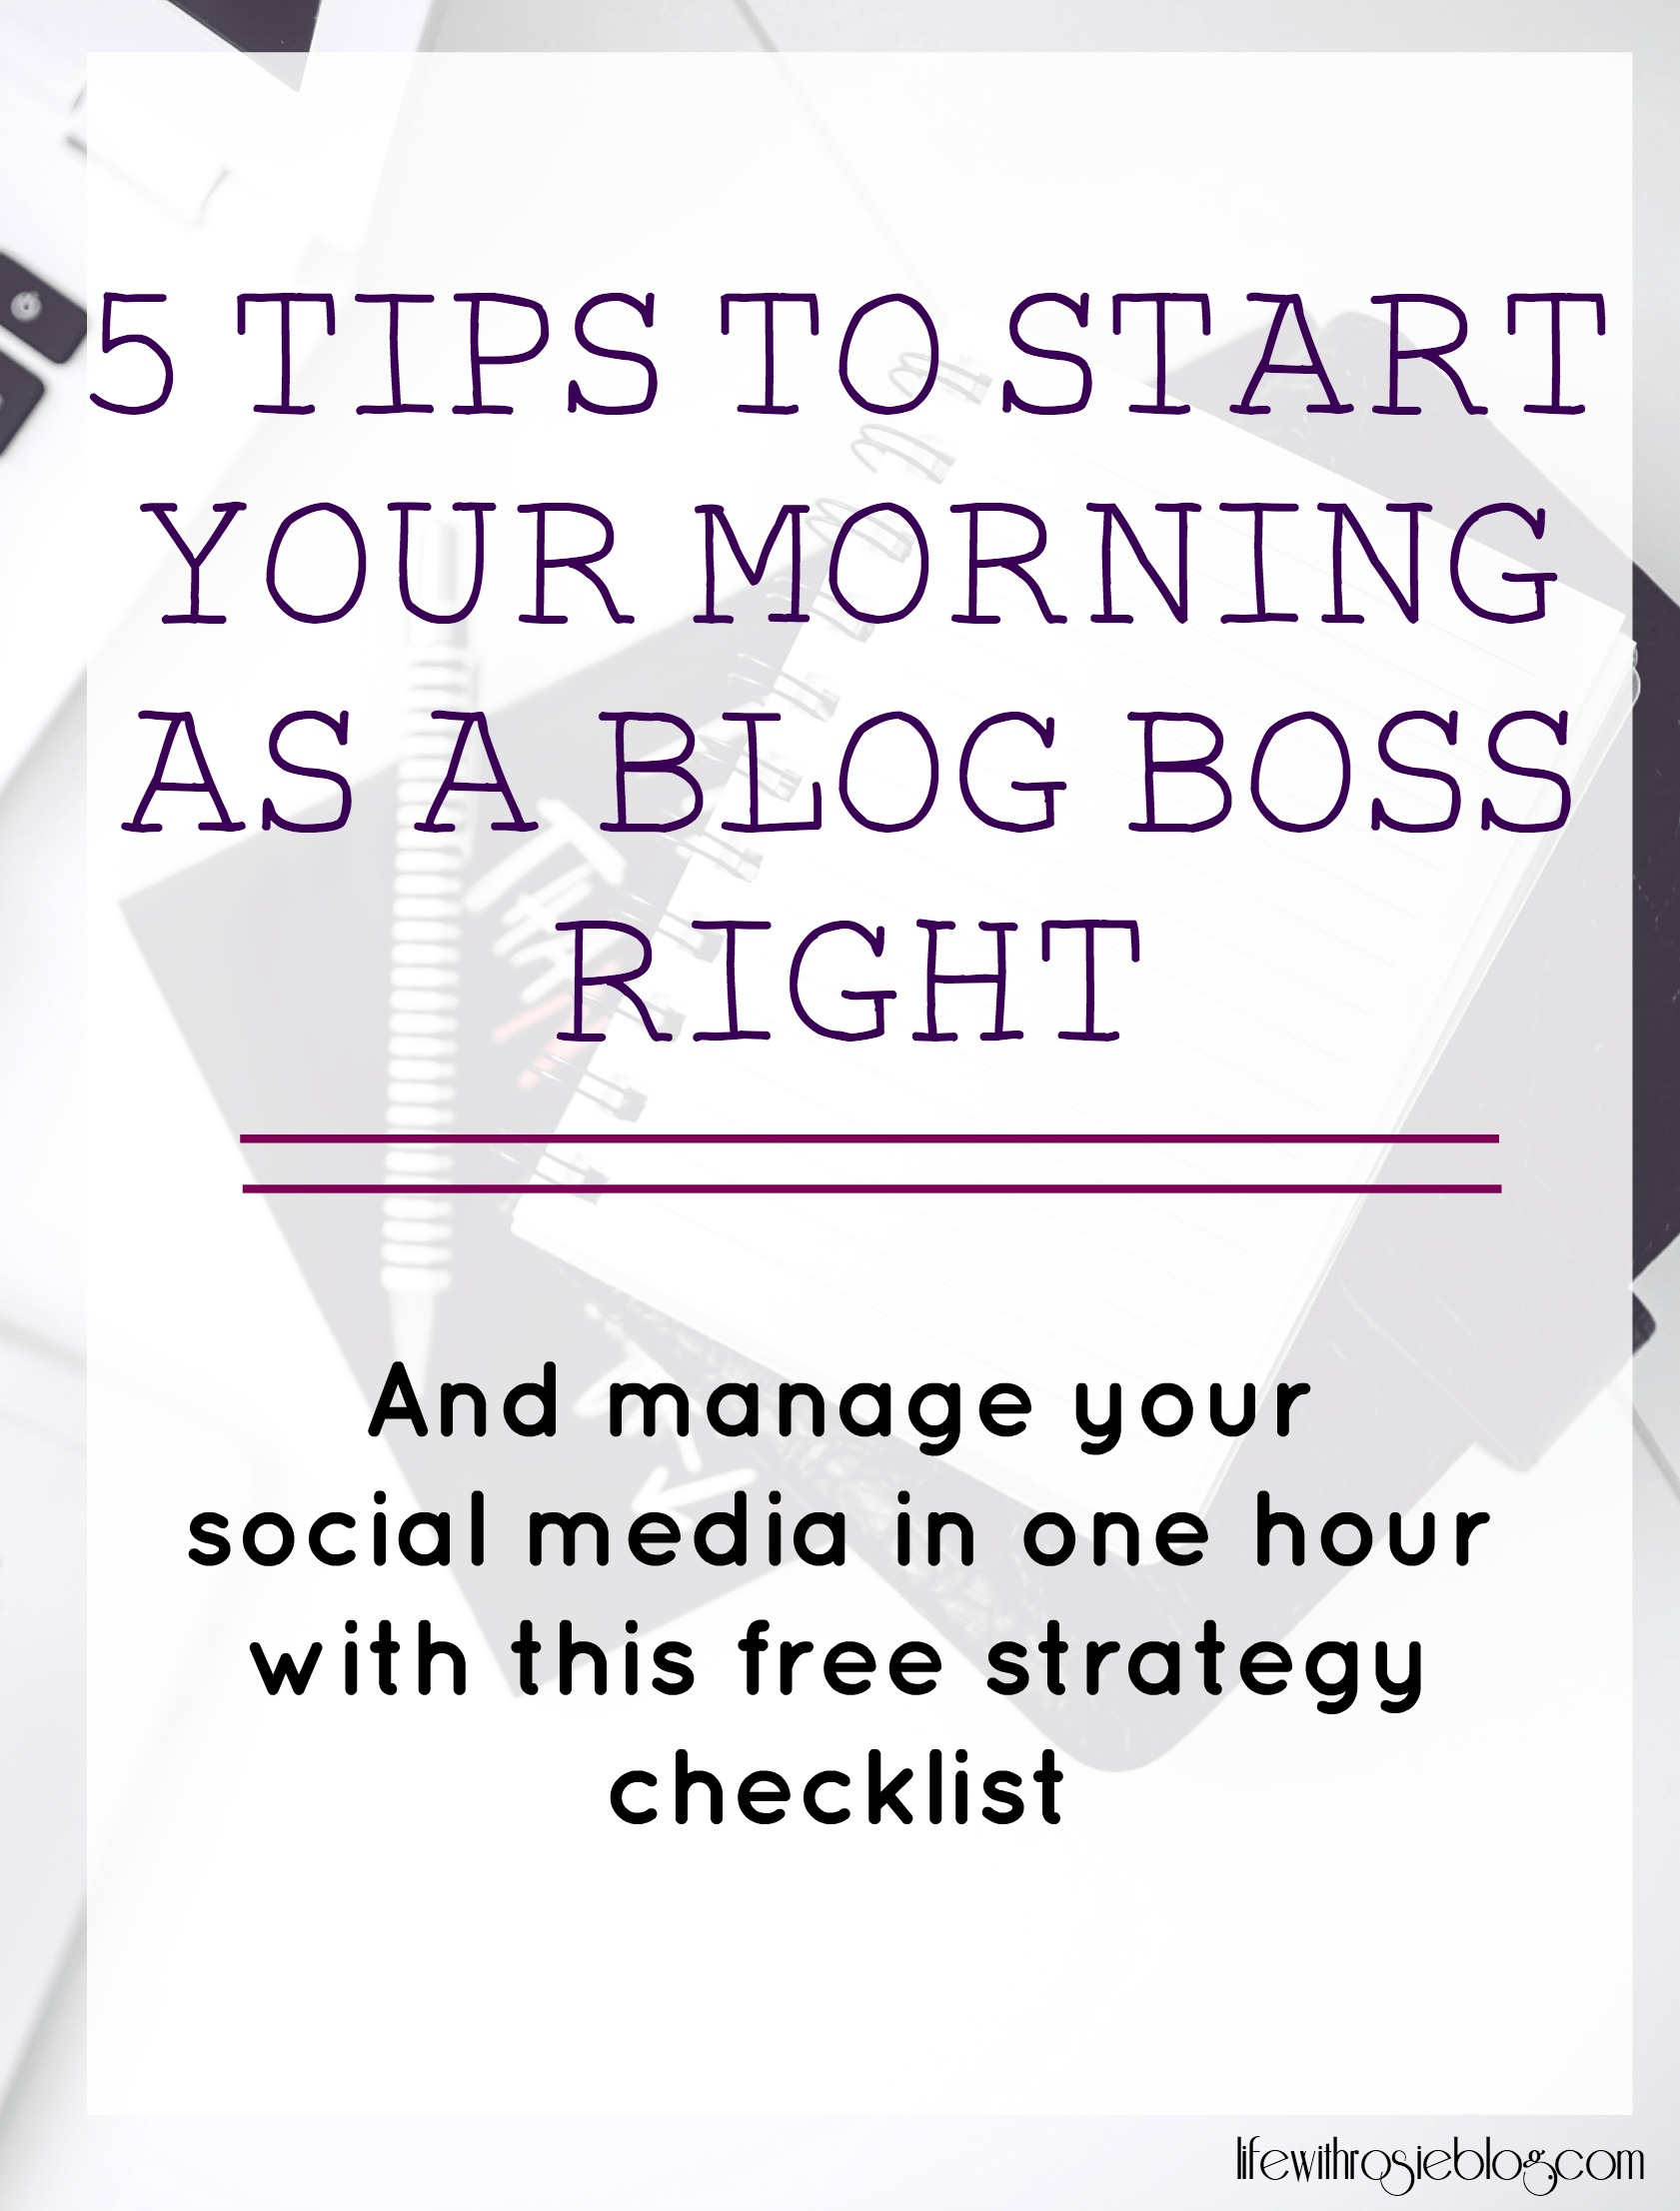 Do you want to be a blog boss? Here are 5 tips to start your morning off right as a blogger and a free social media strategy check list to help manage your accounts // Life with Rosie